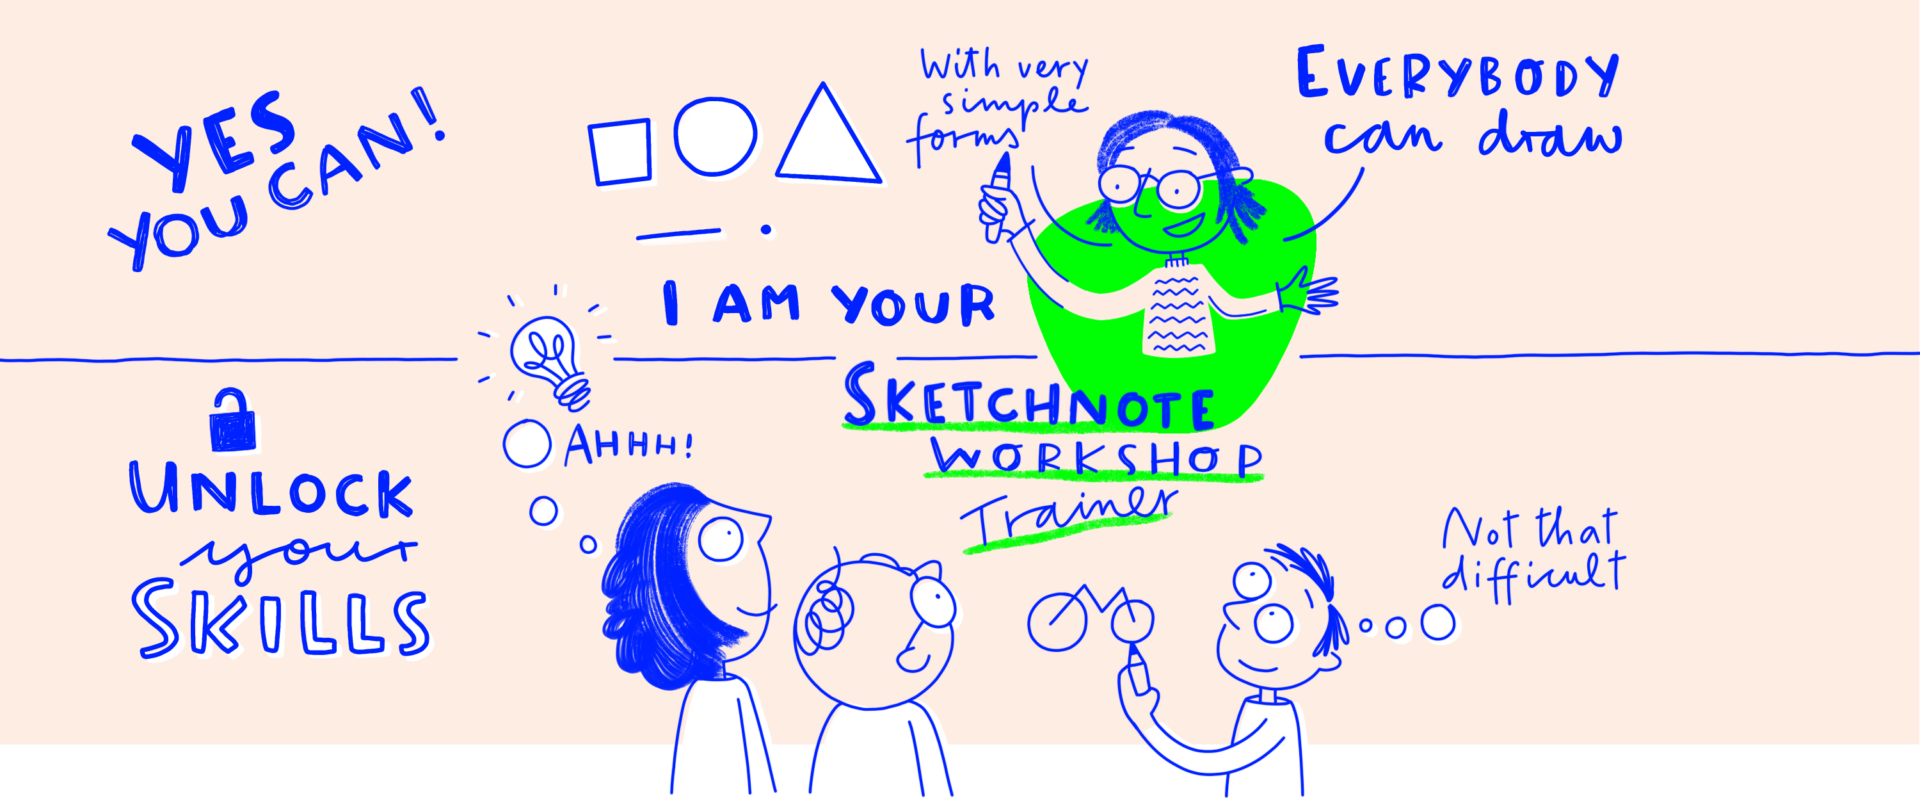 Sketchnote Workshop